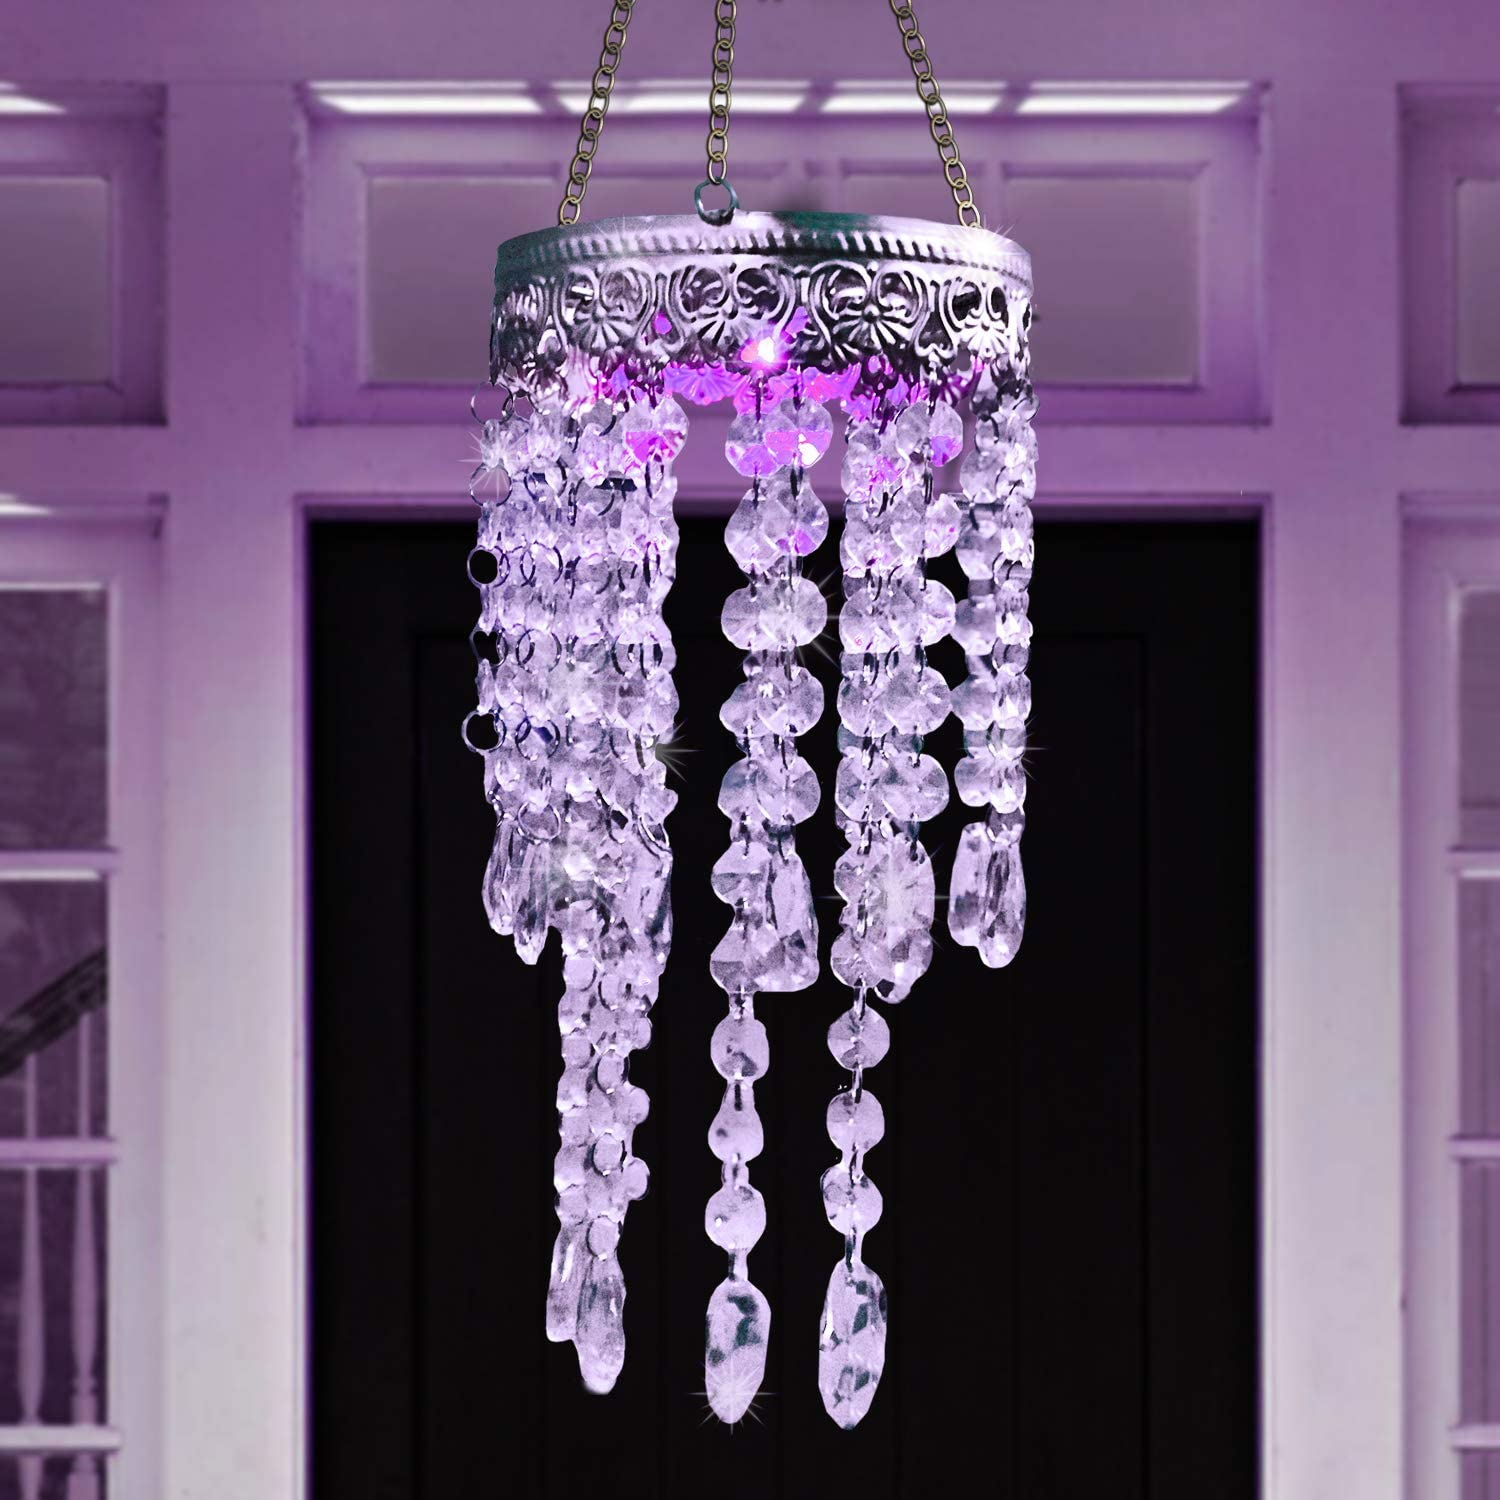 Chandelier Solar Multicolor Clear Crystal Wind Chimes GetSet2Save and Ct Discount Store Chandelier Crystal Clear Wind Chimes Outdoor Decor